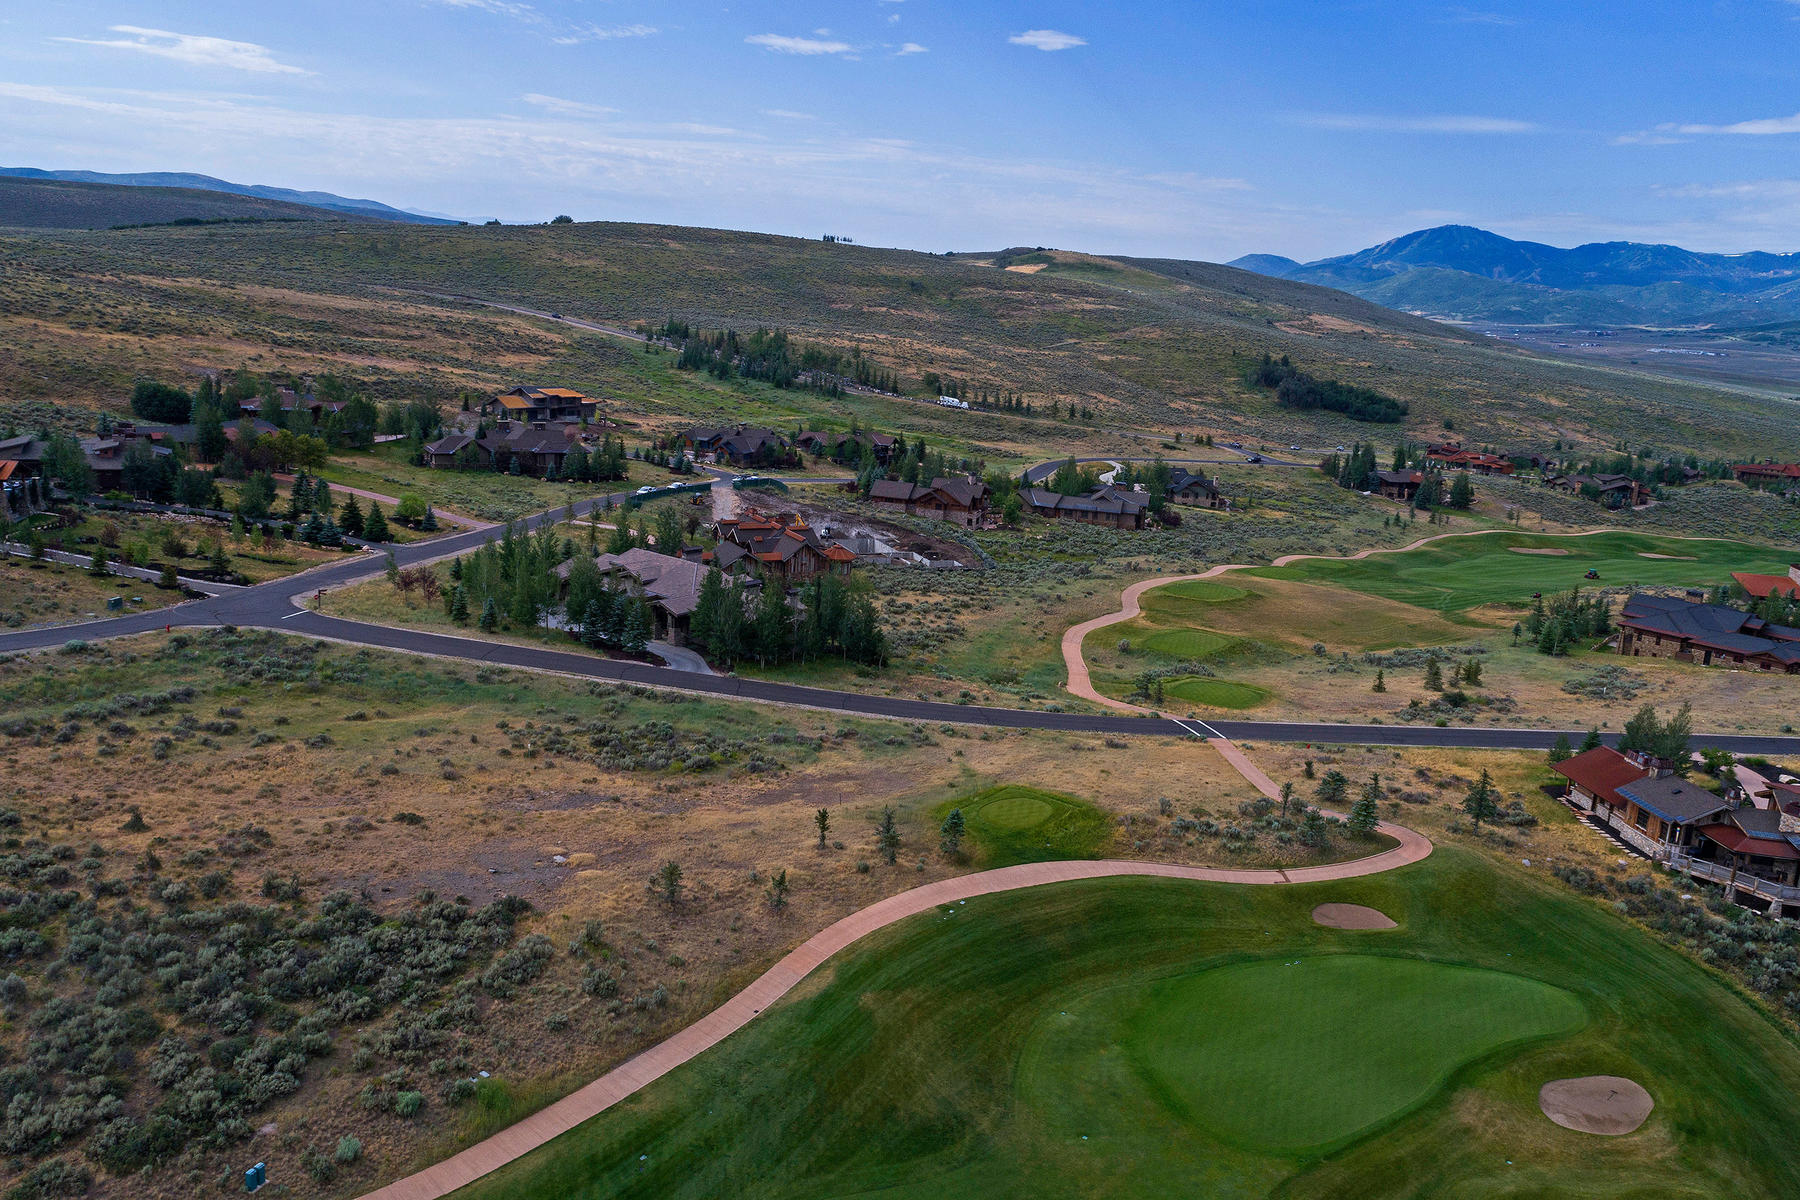 Land for Sale at Golf Course and Wasatch Mountain View Lot 3457 E Westview Trl Park City, Utah, 84098 United States